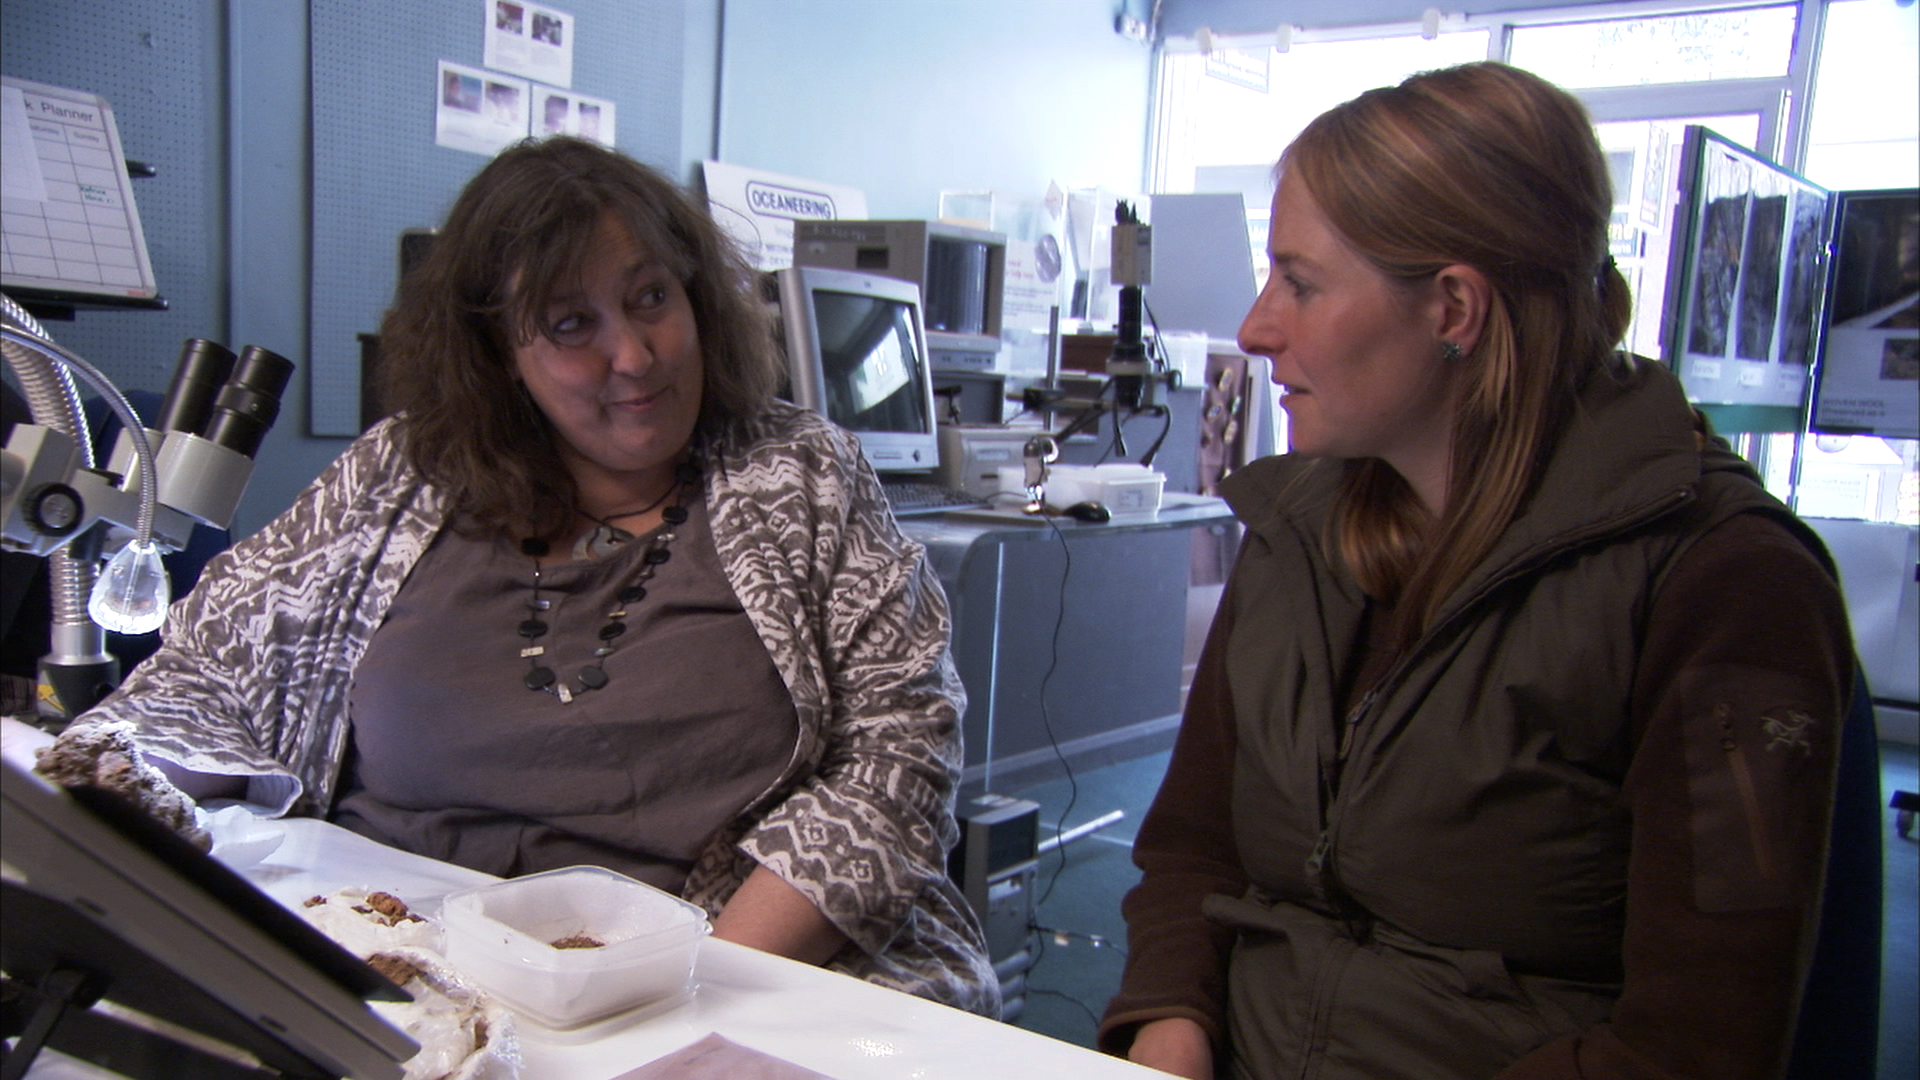 Under the Microscope - Archaeological Conservation